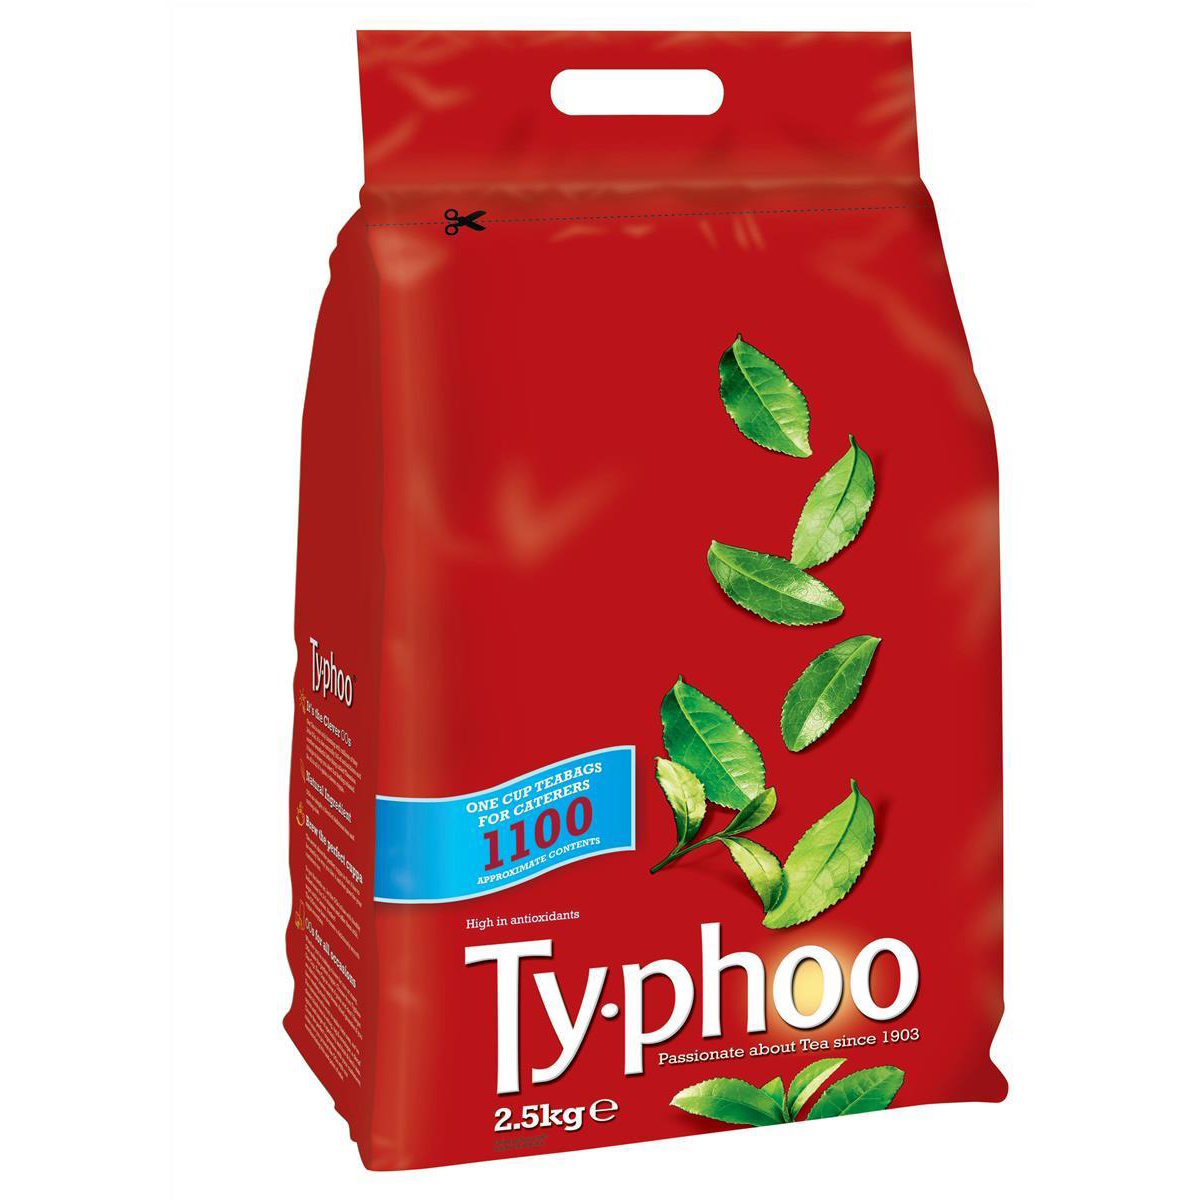 Typhoo Tea Bags Vacuum-packed 1 Cup Ref A00786 [Pack 1100]